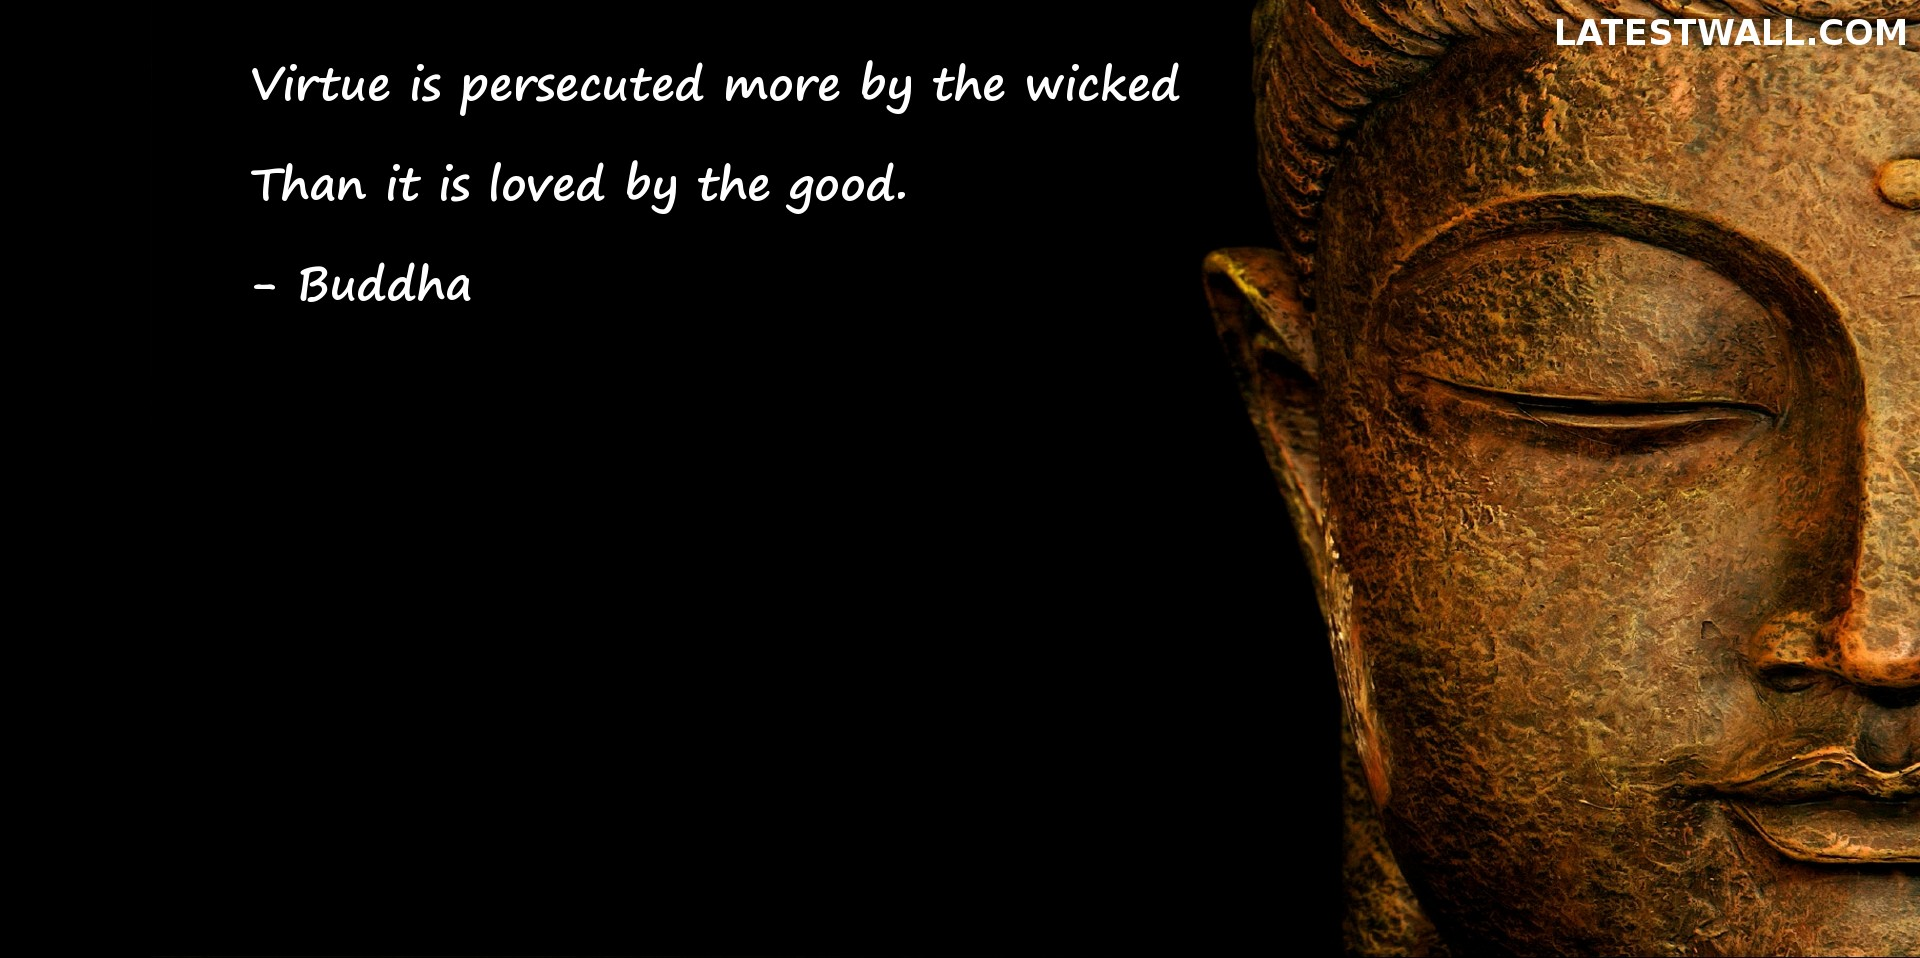 Virtue is persecuted more by the wicked